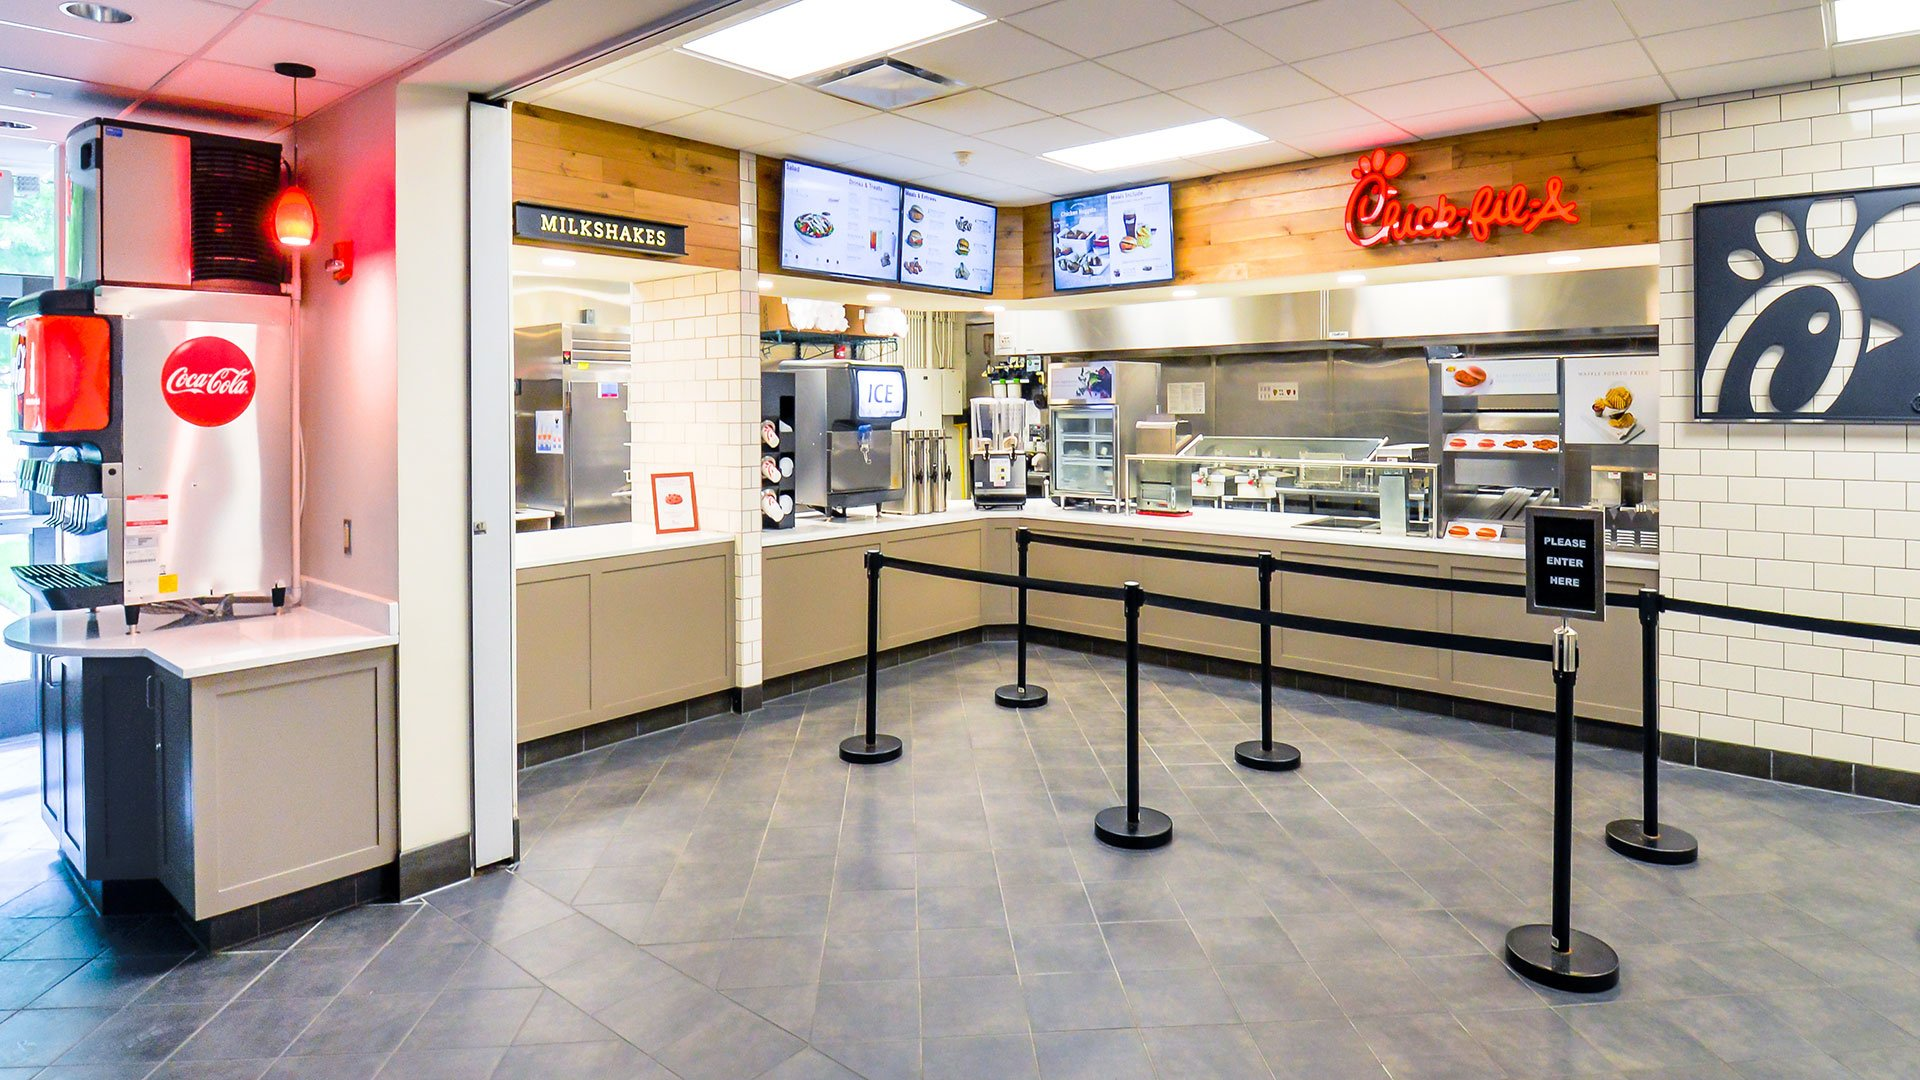 Chick-fil-A, Licensed Locations